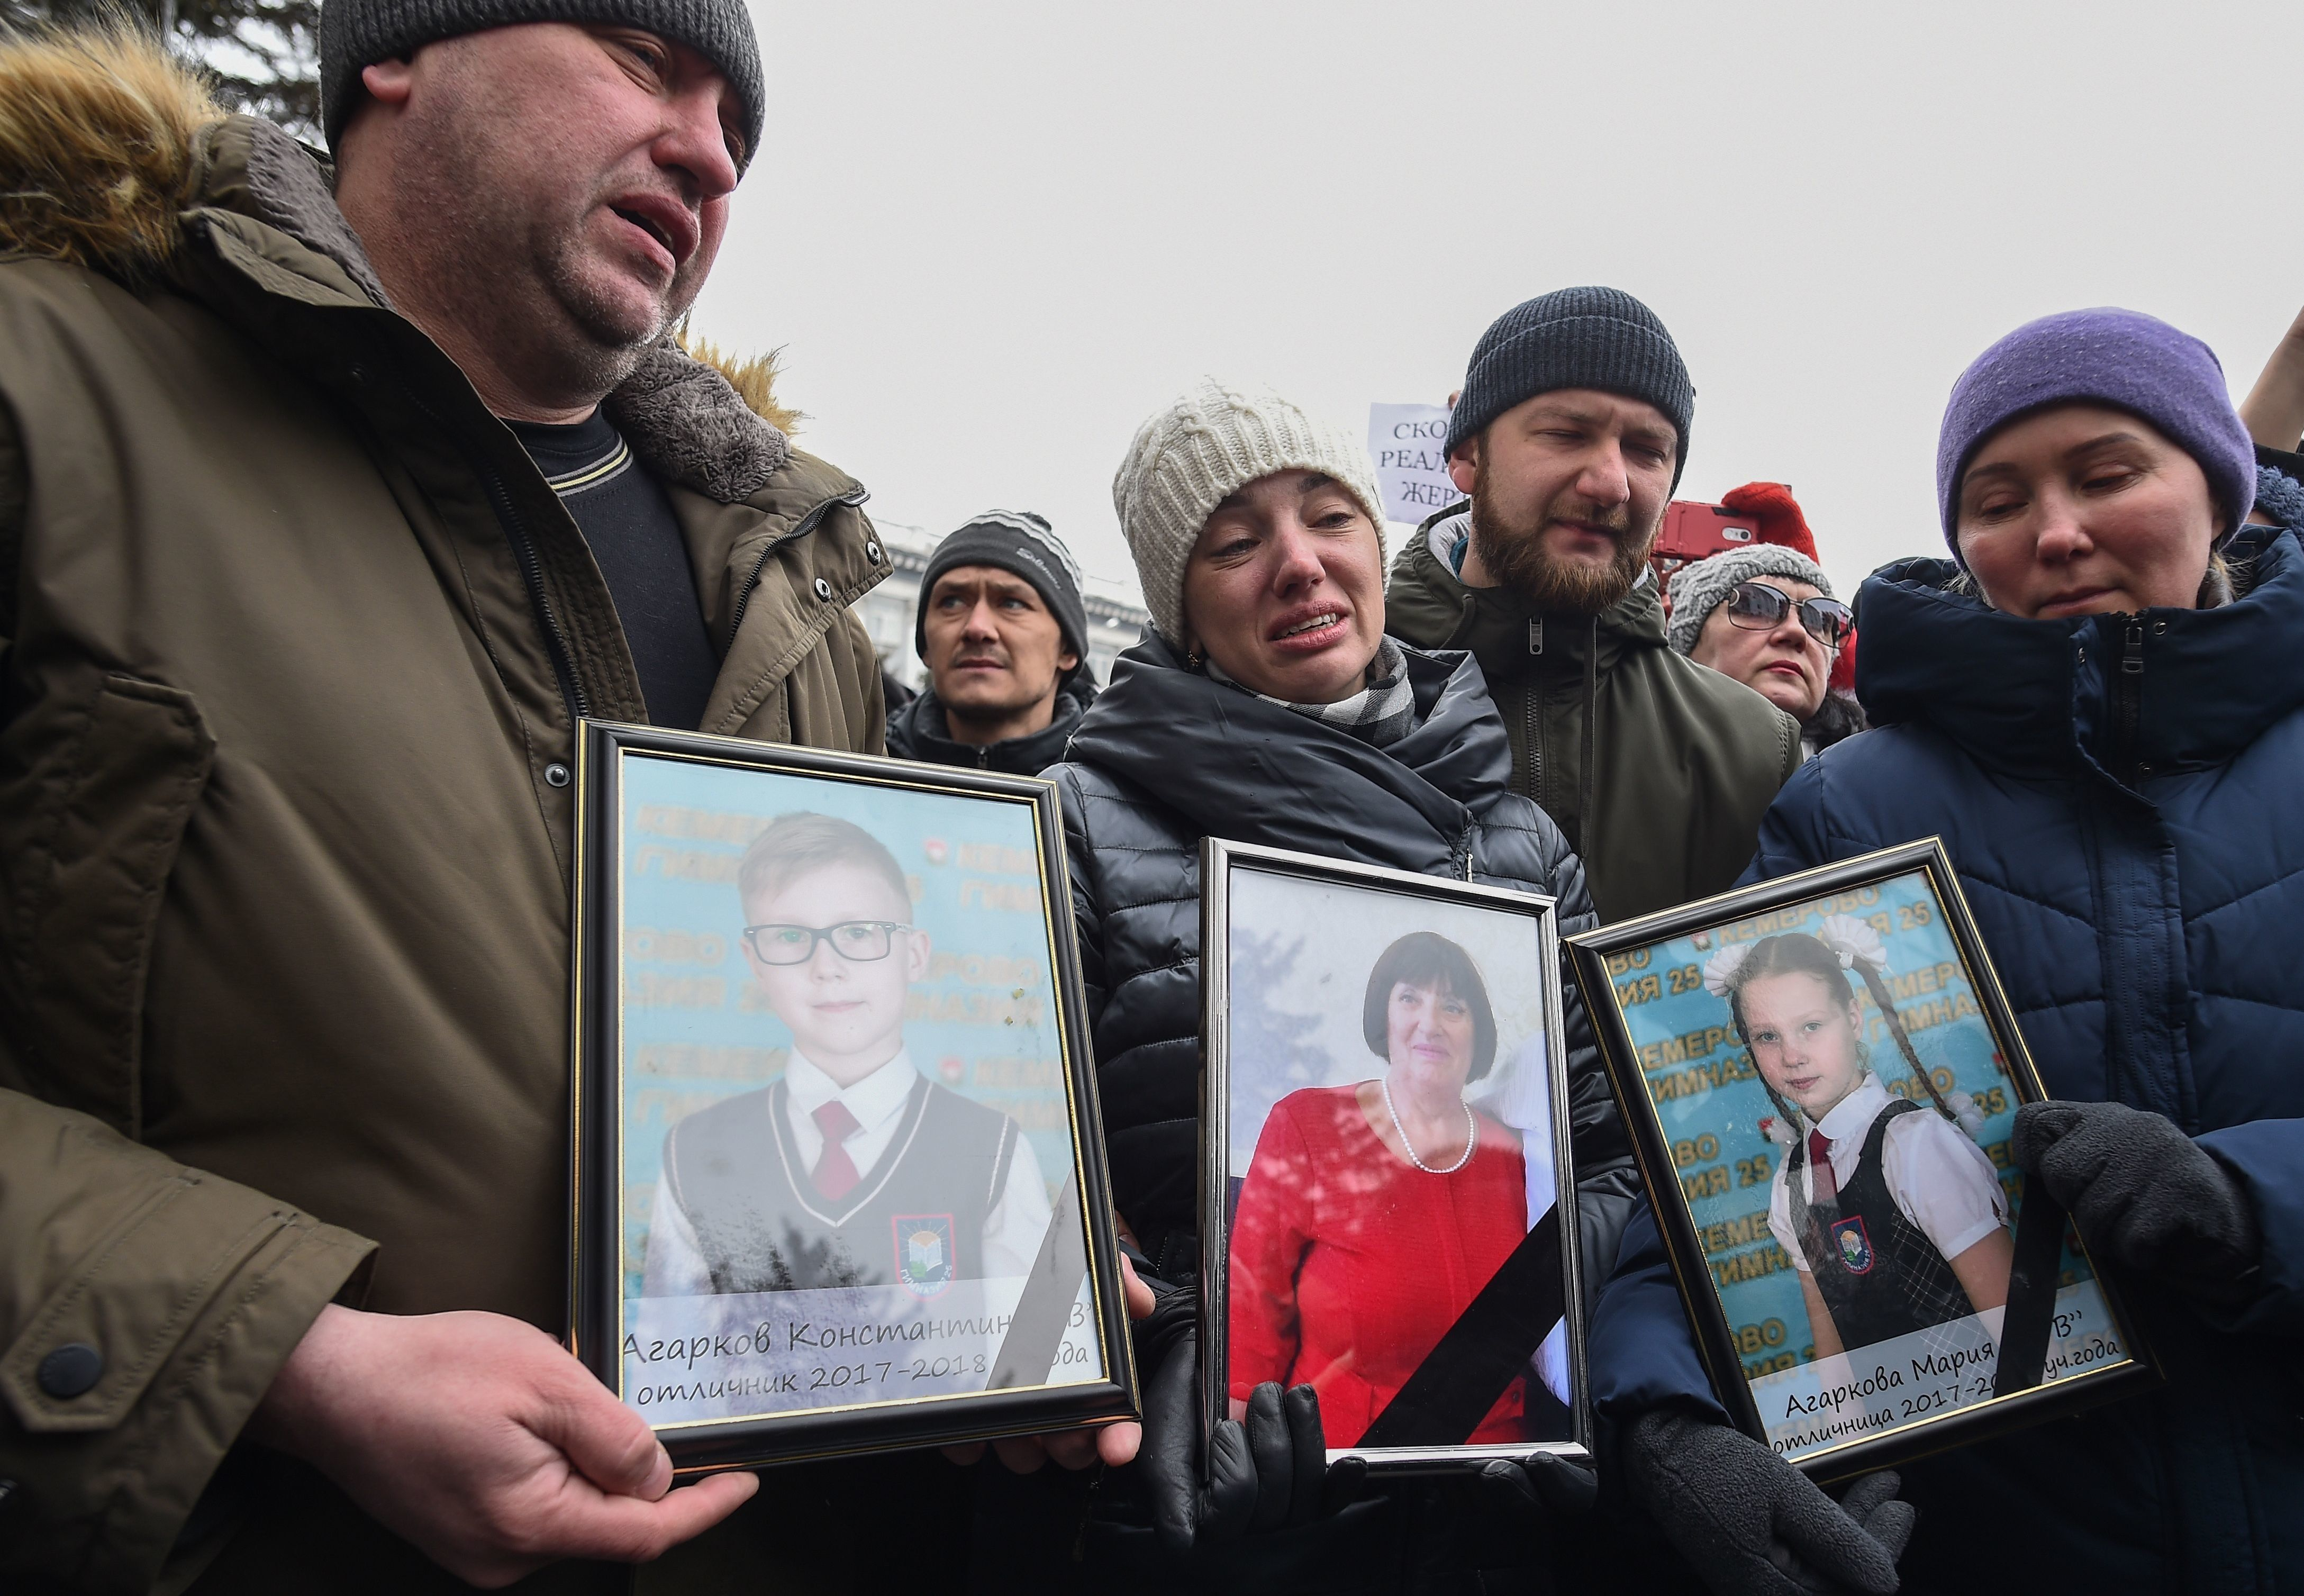 People gather to pay tribute to the victims of a fire at a shopping centre in Kemerovo on March 27, 2018. Russian authorities on on March 26, 2018 denounced what they called 'flagrant violations' of safety norms that led to the deaths of 64 people, many of them children, in a fire at a busy shopping mall in an industrial city in Siberia. / AFP PHOTO / Dmitry Serebryakov        (Photo credit should read DMITRY SEREBRYAKOV/AFP/Getty Images)